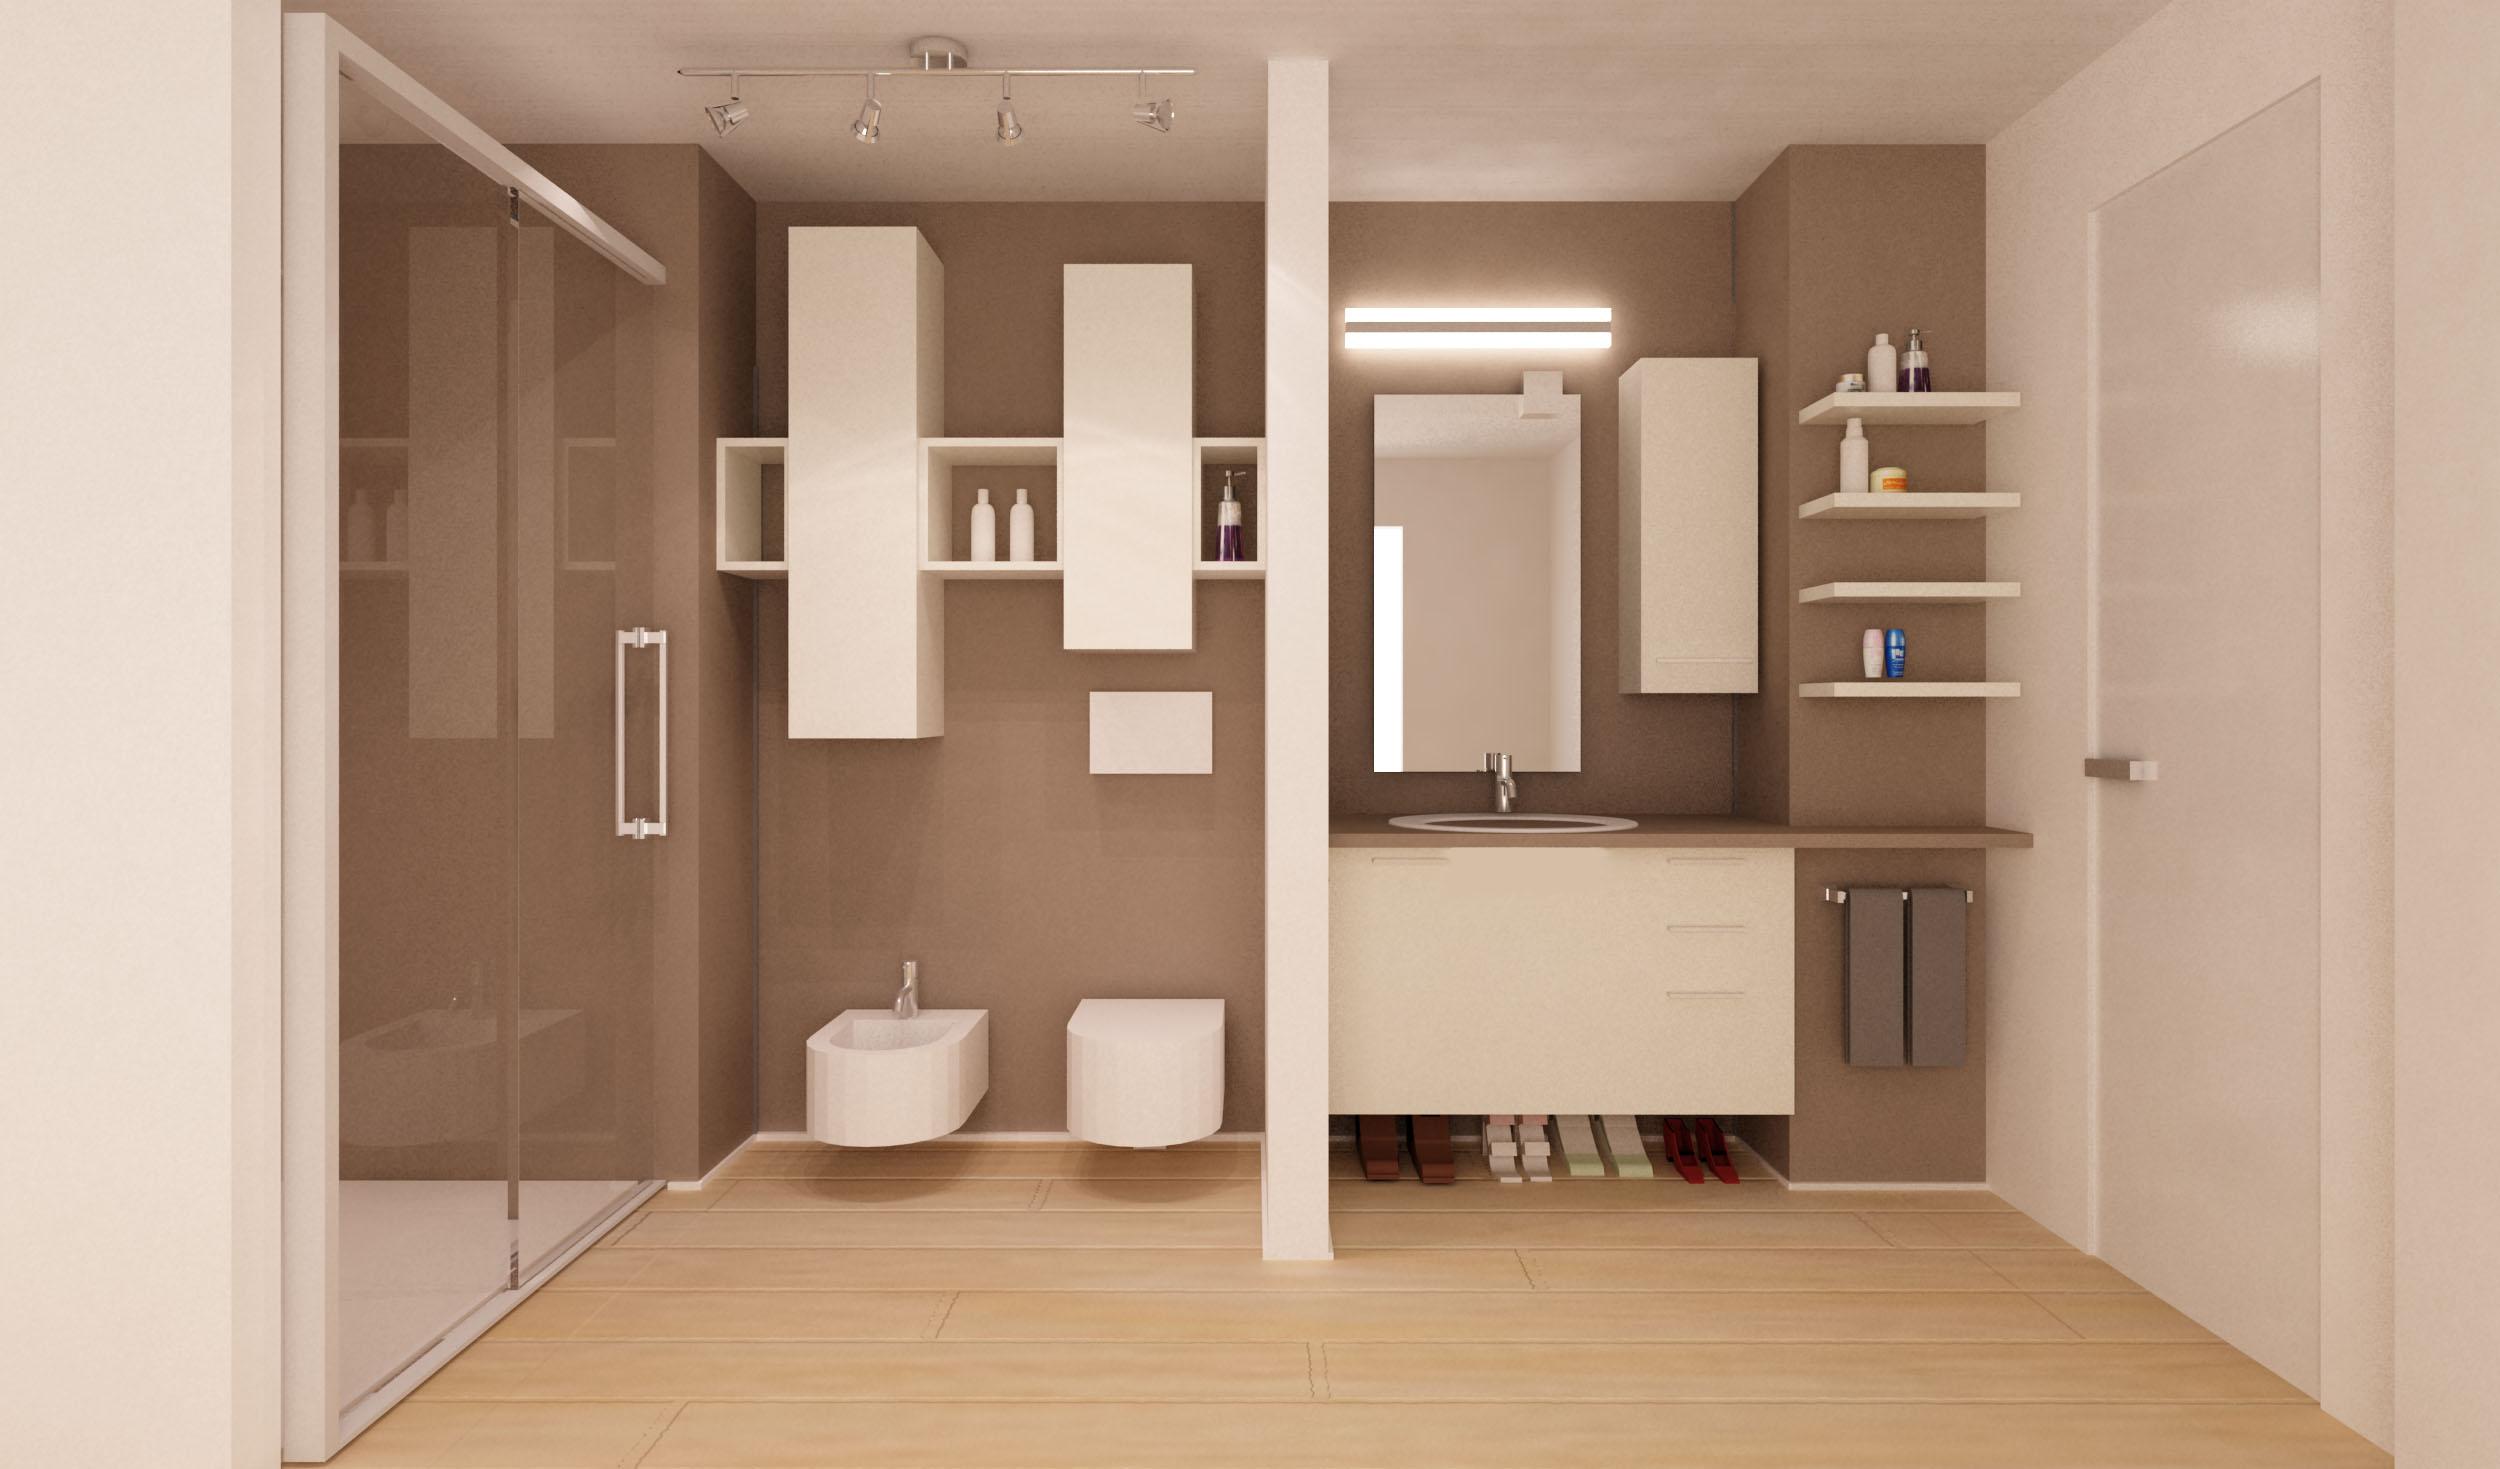 https://maydaycasa.files.wordpress.com/2013/09/bagno2.jpg